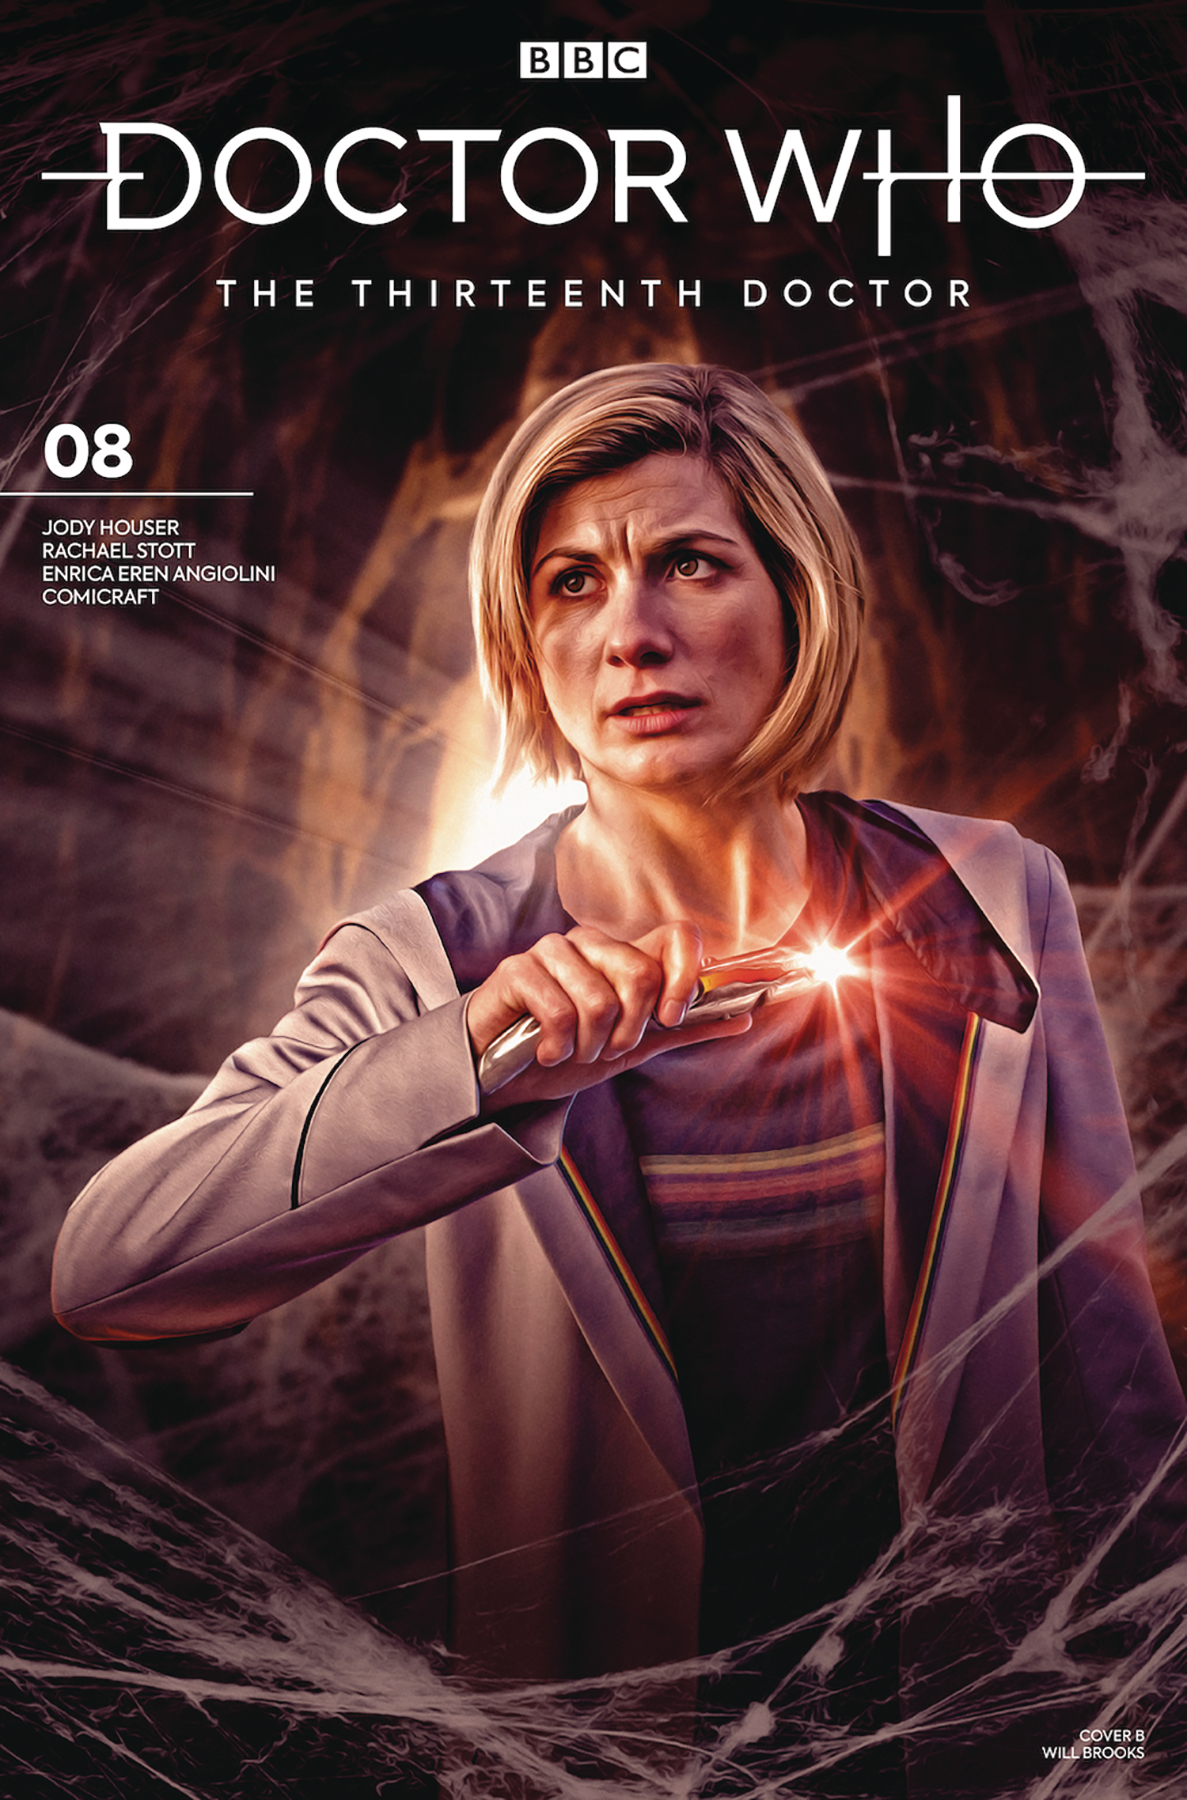 DOCTOR WHO 13TH #8 CVR B PHOTO